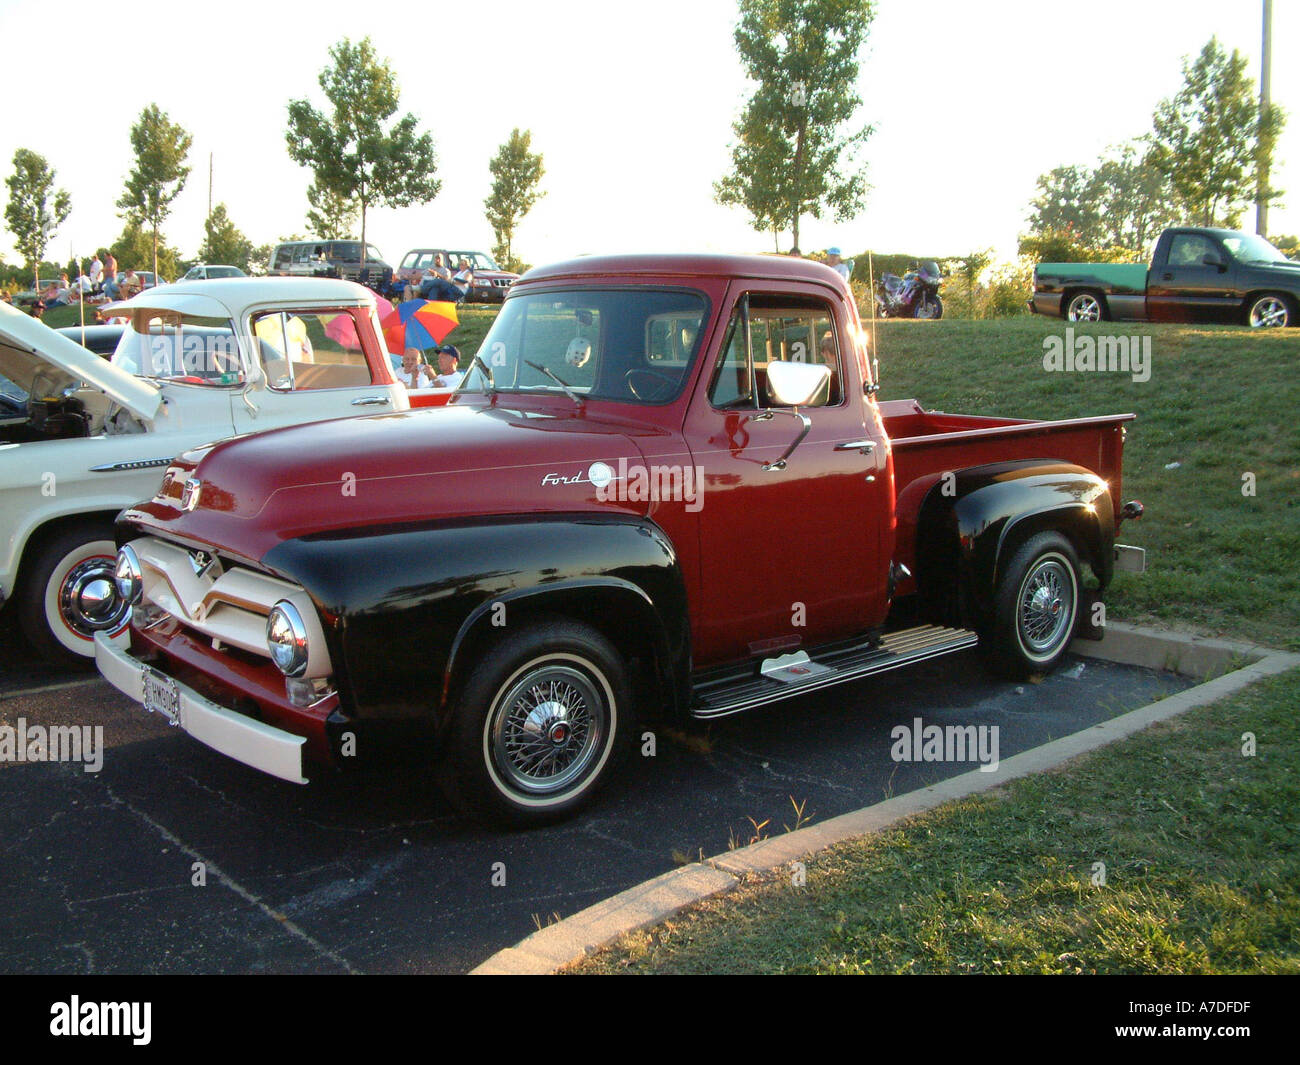 Ford F100 Stock Photos Images Alamy 1955 Panel Truck Pickup Hm90b Image